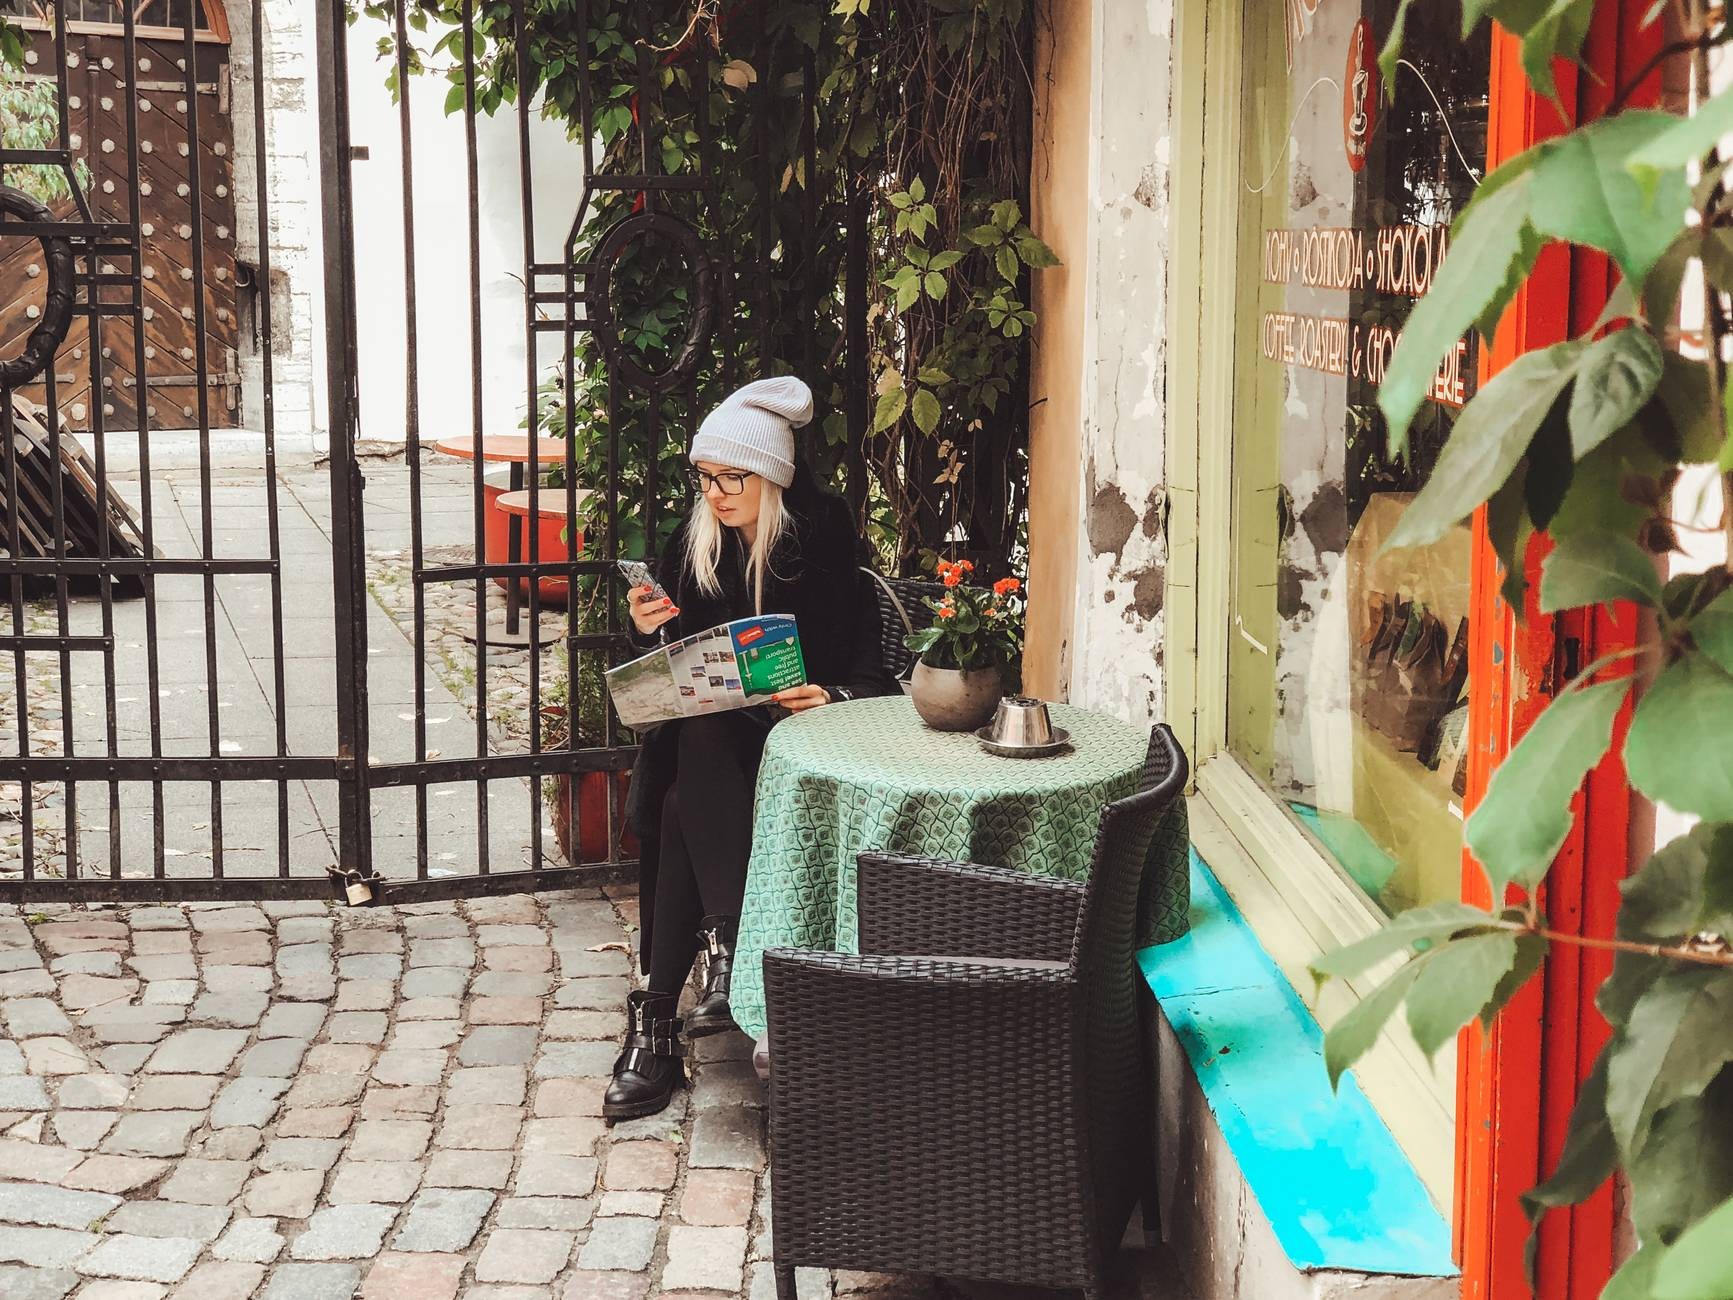 Woman at  the Old Town of Tallinn, Estonia, looking at a map of the city.  Photo: Kadi-Liis Koppel